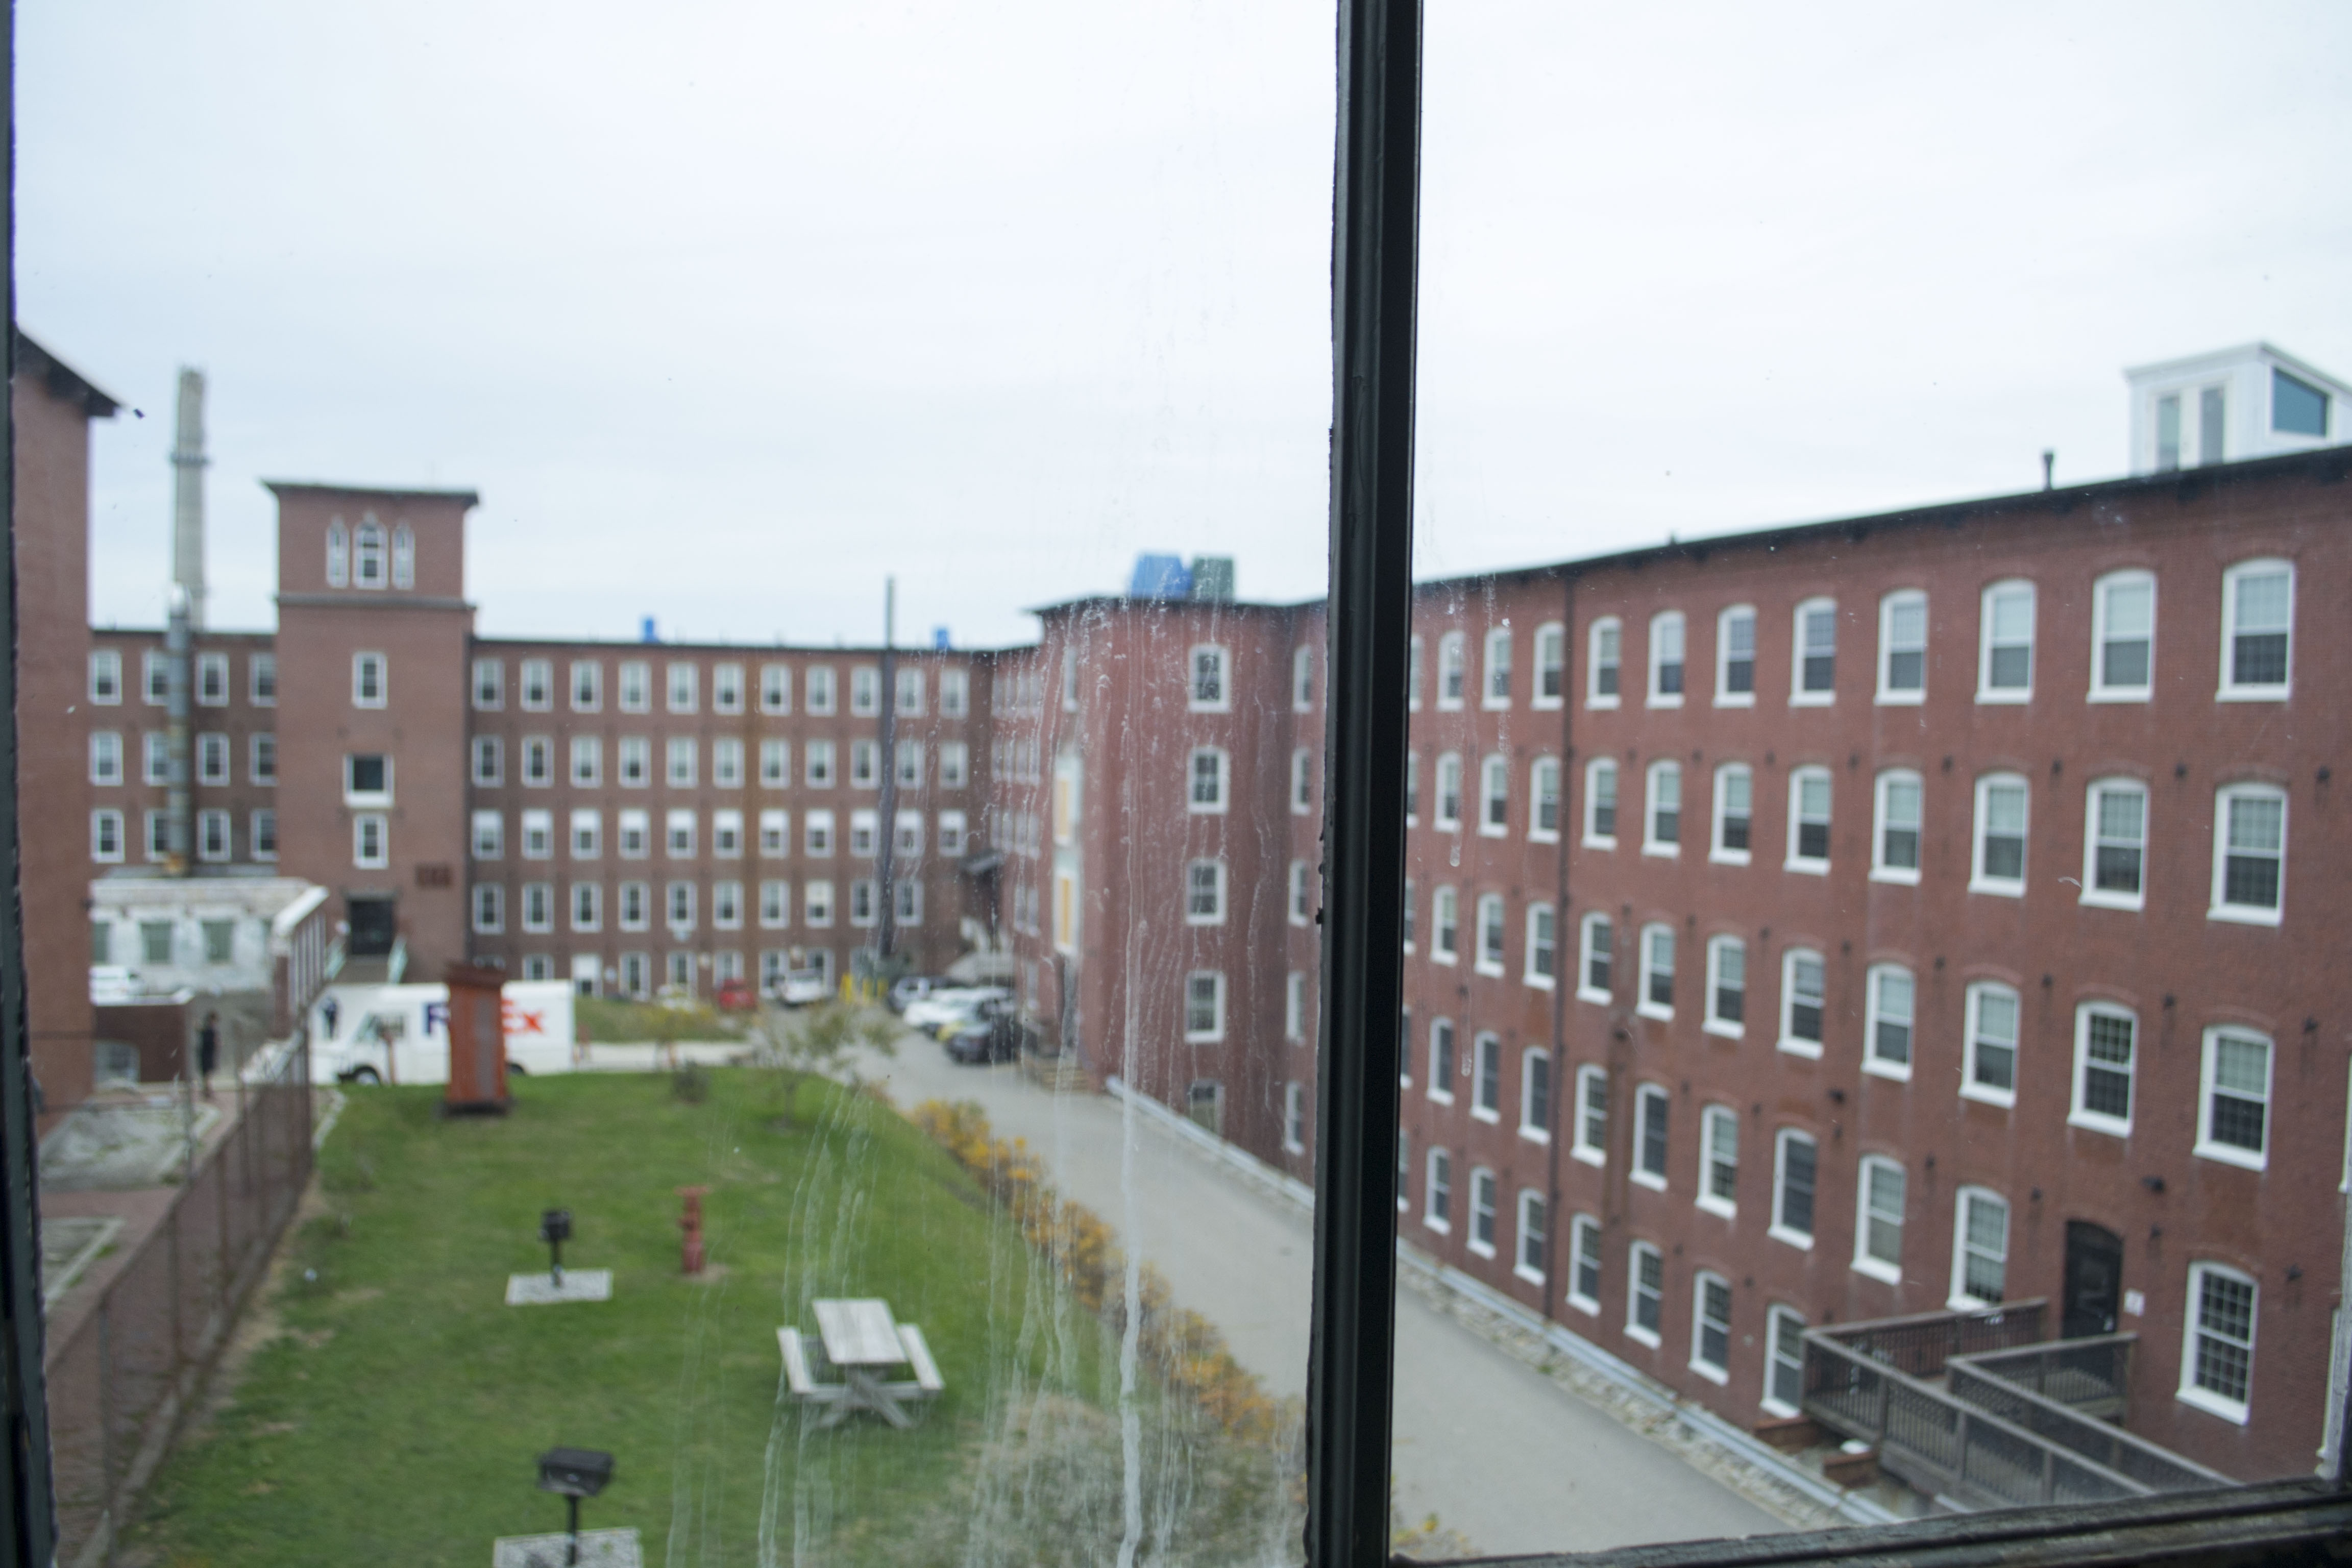 """Buildings 17 and 18 of the North Dam Mill complex can be seen from the window of a former office space in the Pepperell Mill. Guillerault said he expects the Pepperell space to change as those spaces have, into offices, restaurants and housing —a change he welcomes with open arms. """"It's given new life and a renewed sense of purpose"""" to the mills, he said. ALAN BENNETT/Journal Tribune"""